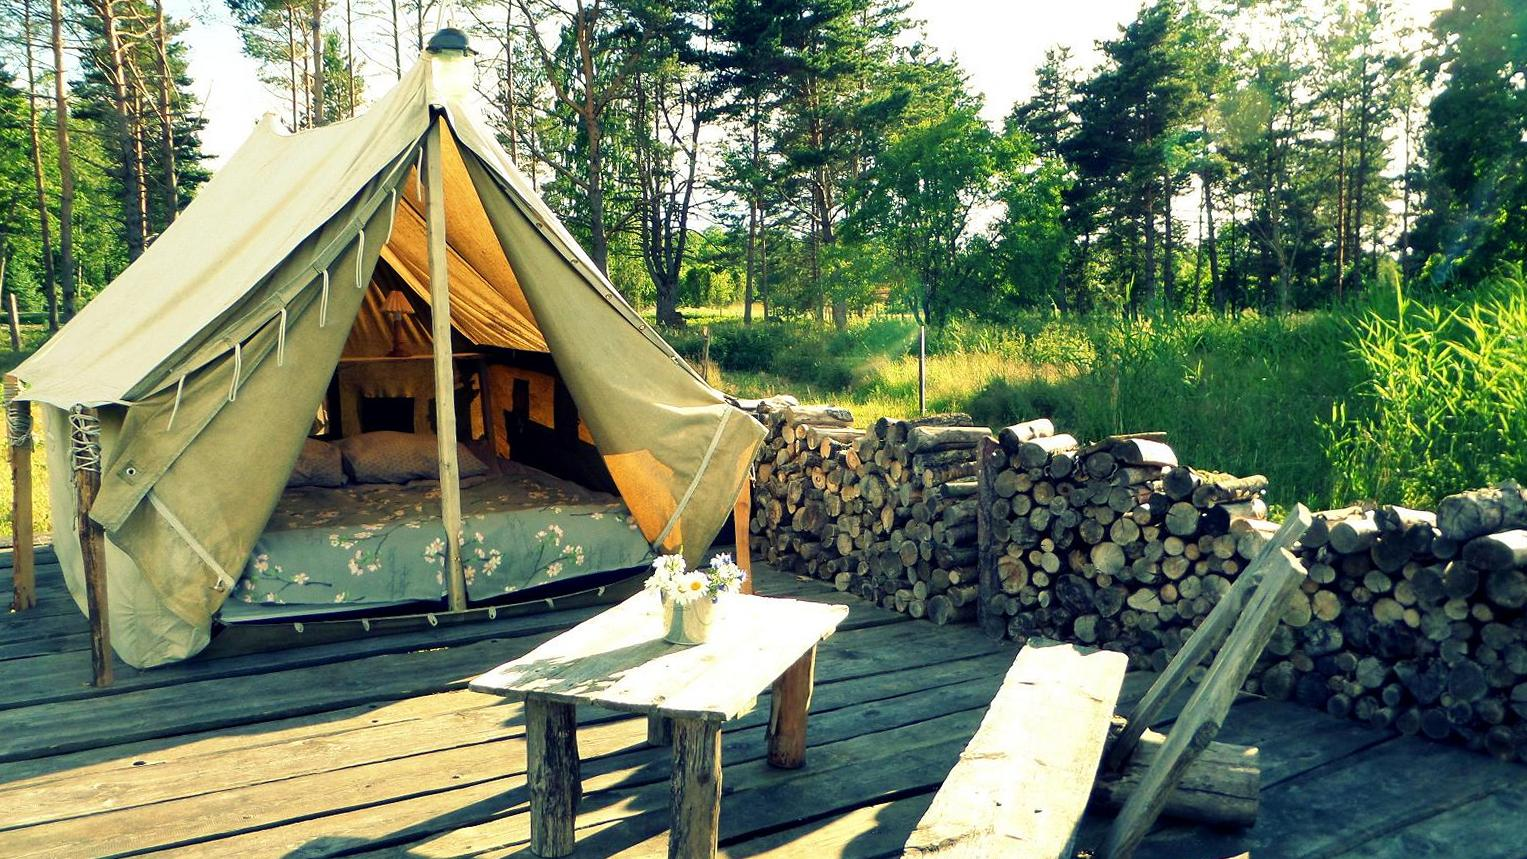 Tent is an eco friendly accommodation